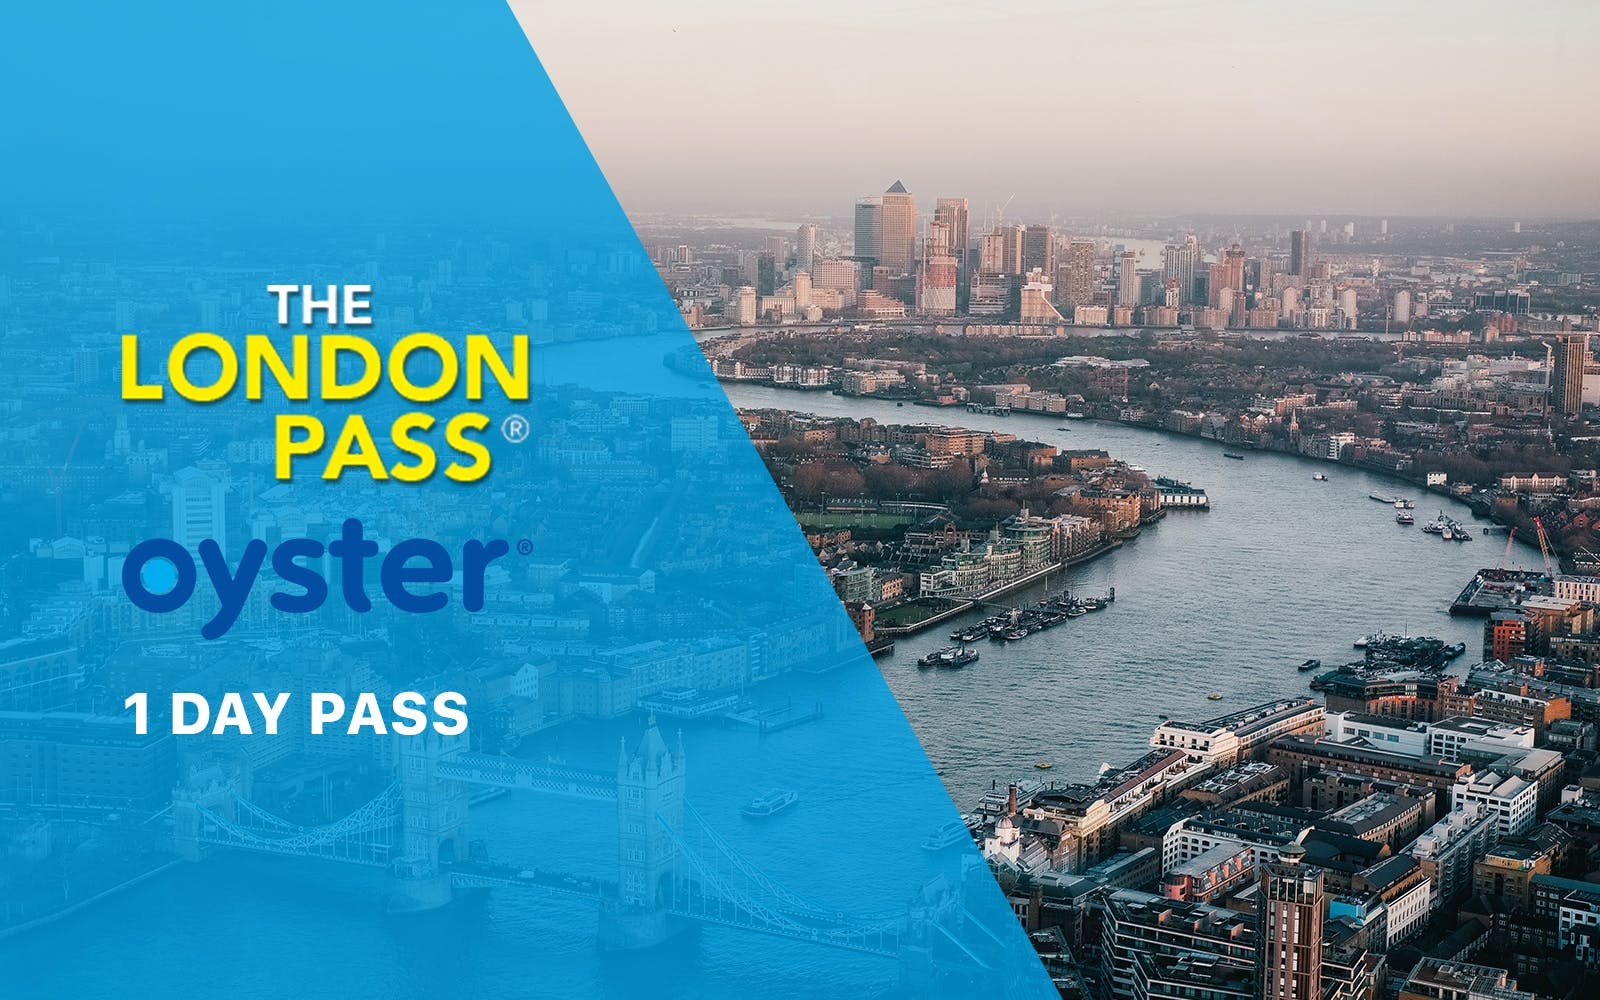 1 Day London Pass with Oyster Travel Card